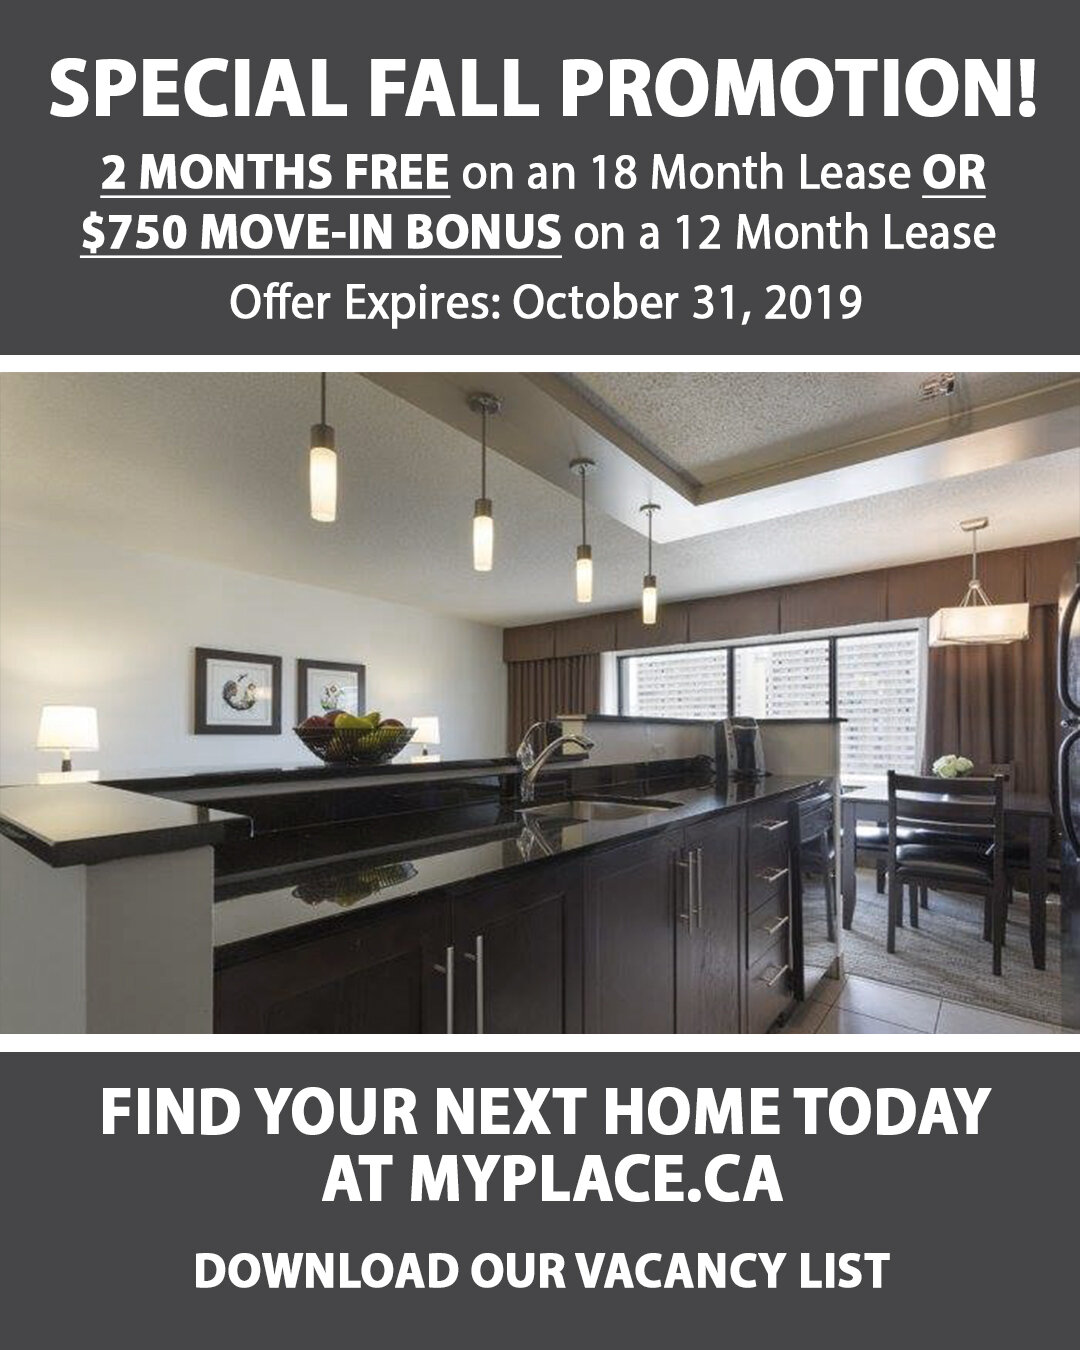 My Place Fall Promotion - Facebook Ad - Expires October 31-2019.jpg